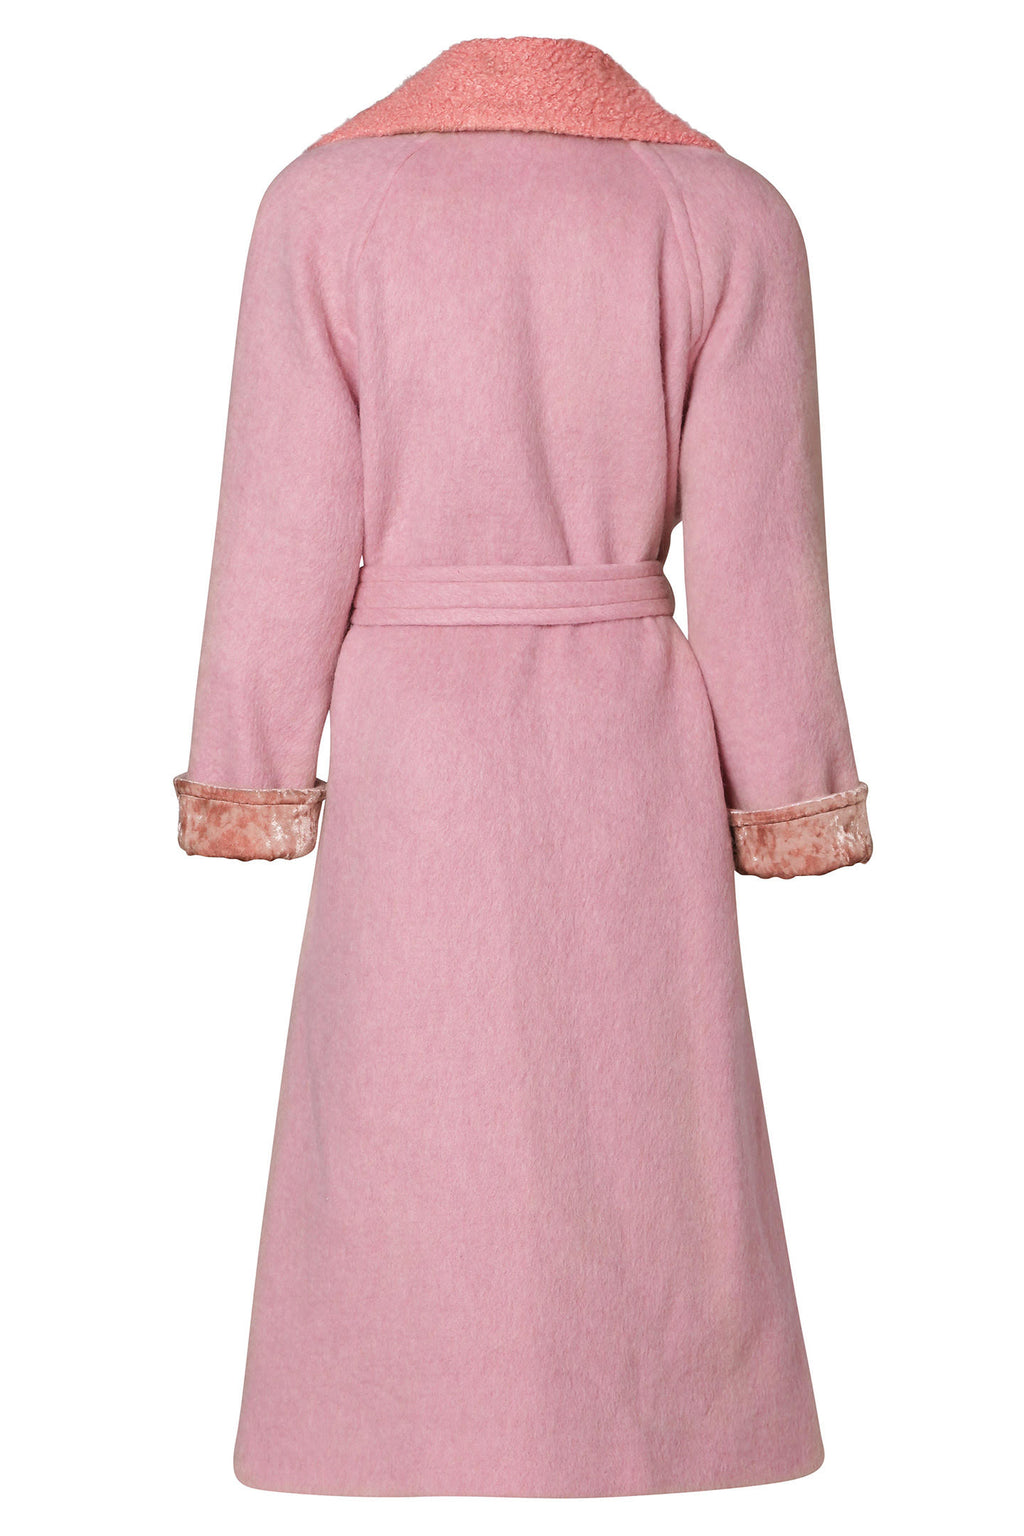 Long Winter Coat Cotton Candy Pink